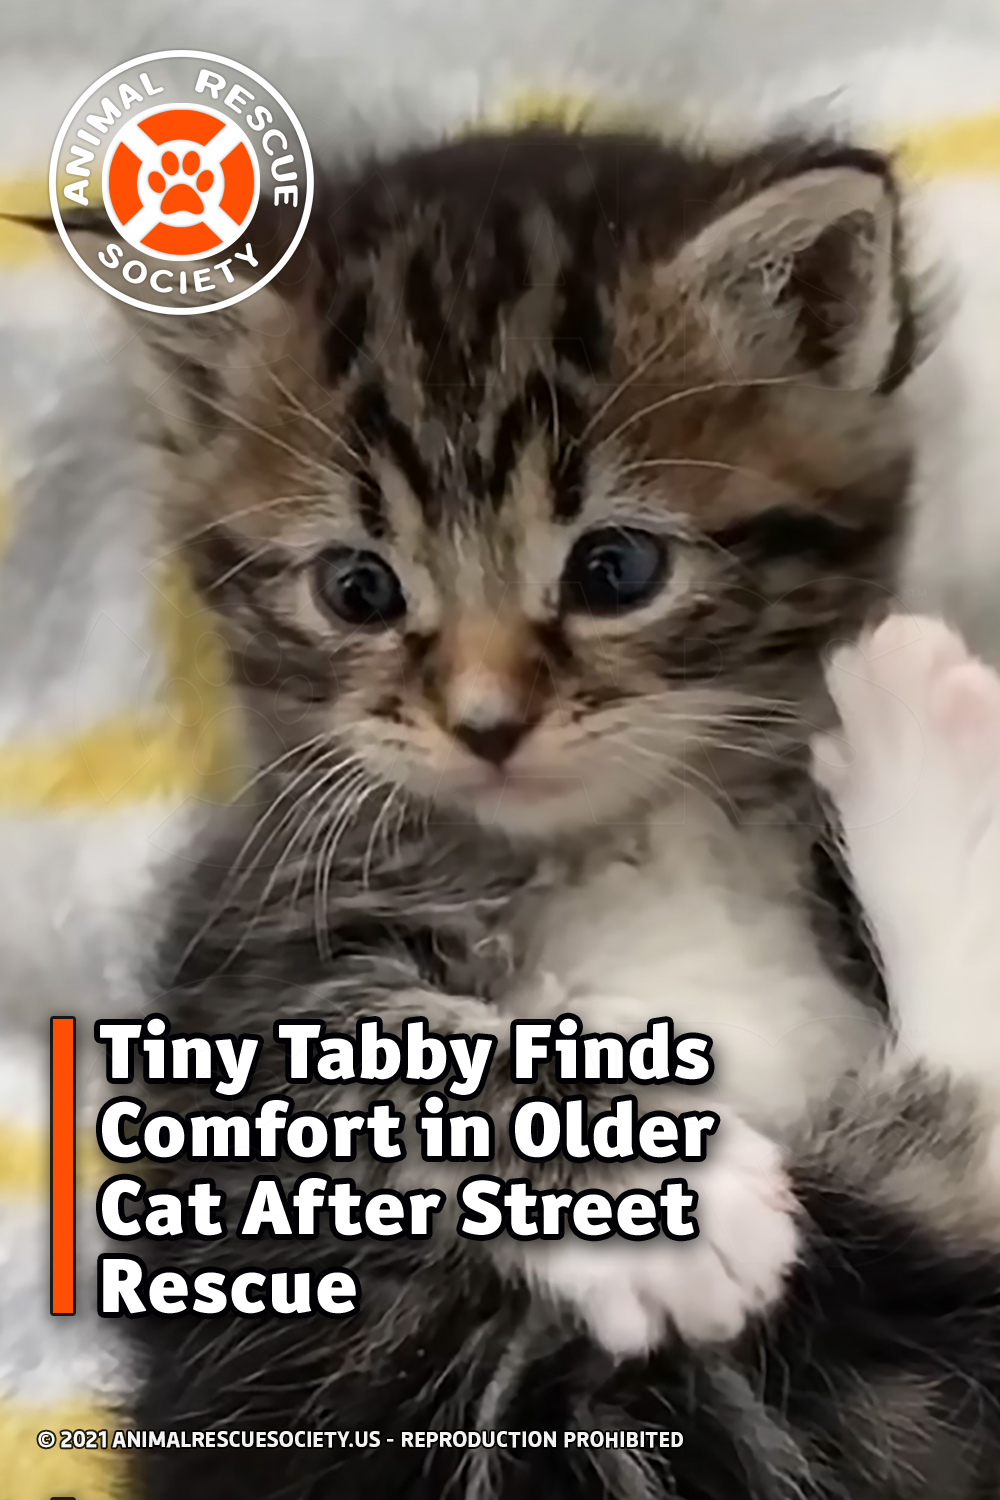 Tiny Tabby Finds Comfort in Older Cat After Street Rescue